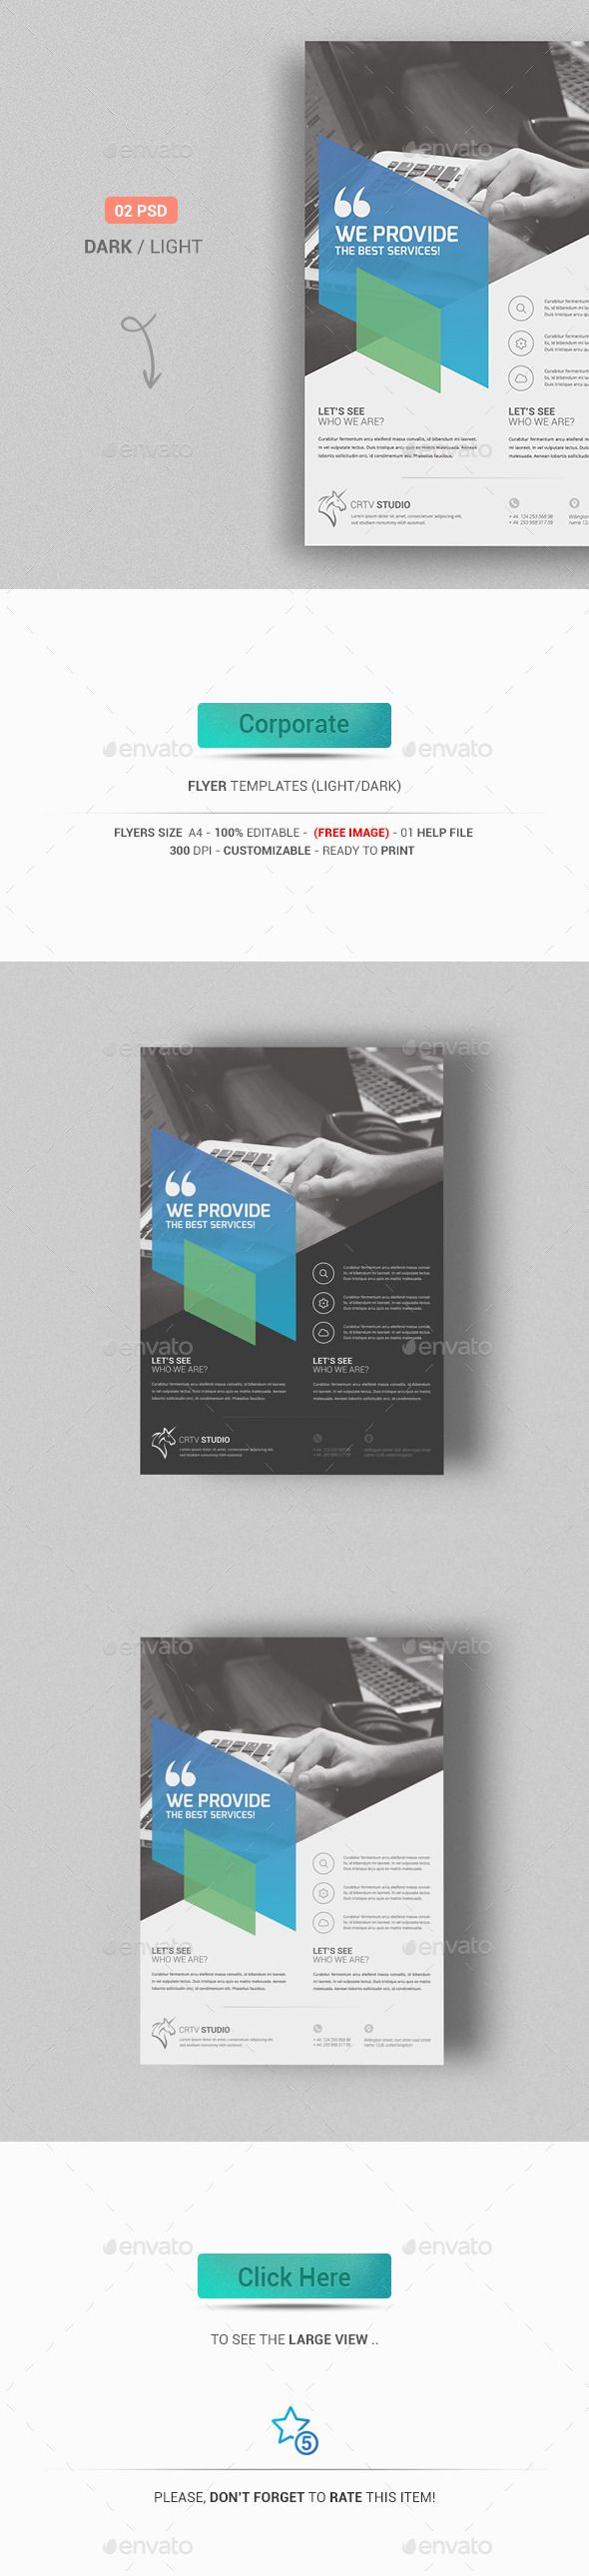 Corporate Flyer  PSD Template • Get it now! ➝ https://graphicriver.net/item/corporate-flyer/13161252?ref=pxcr